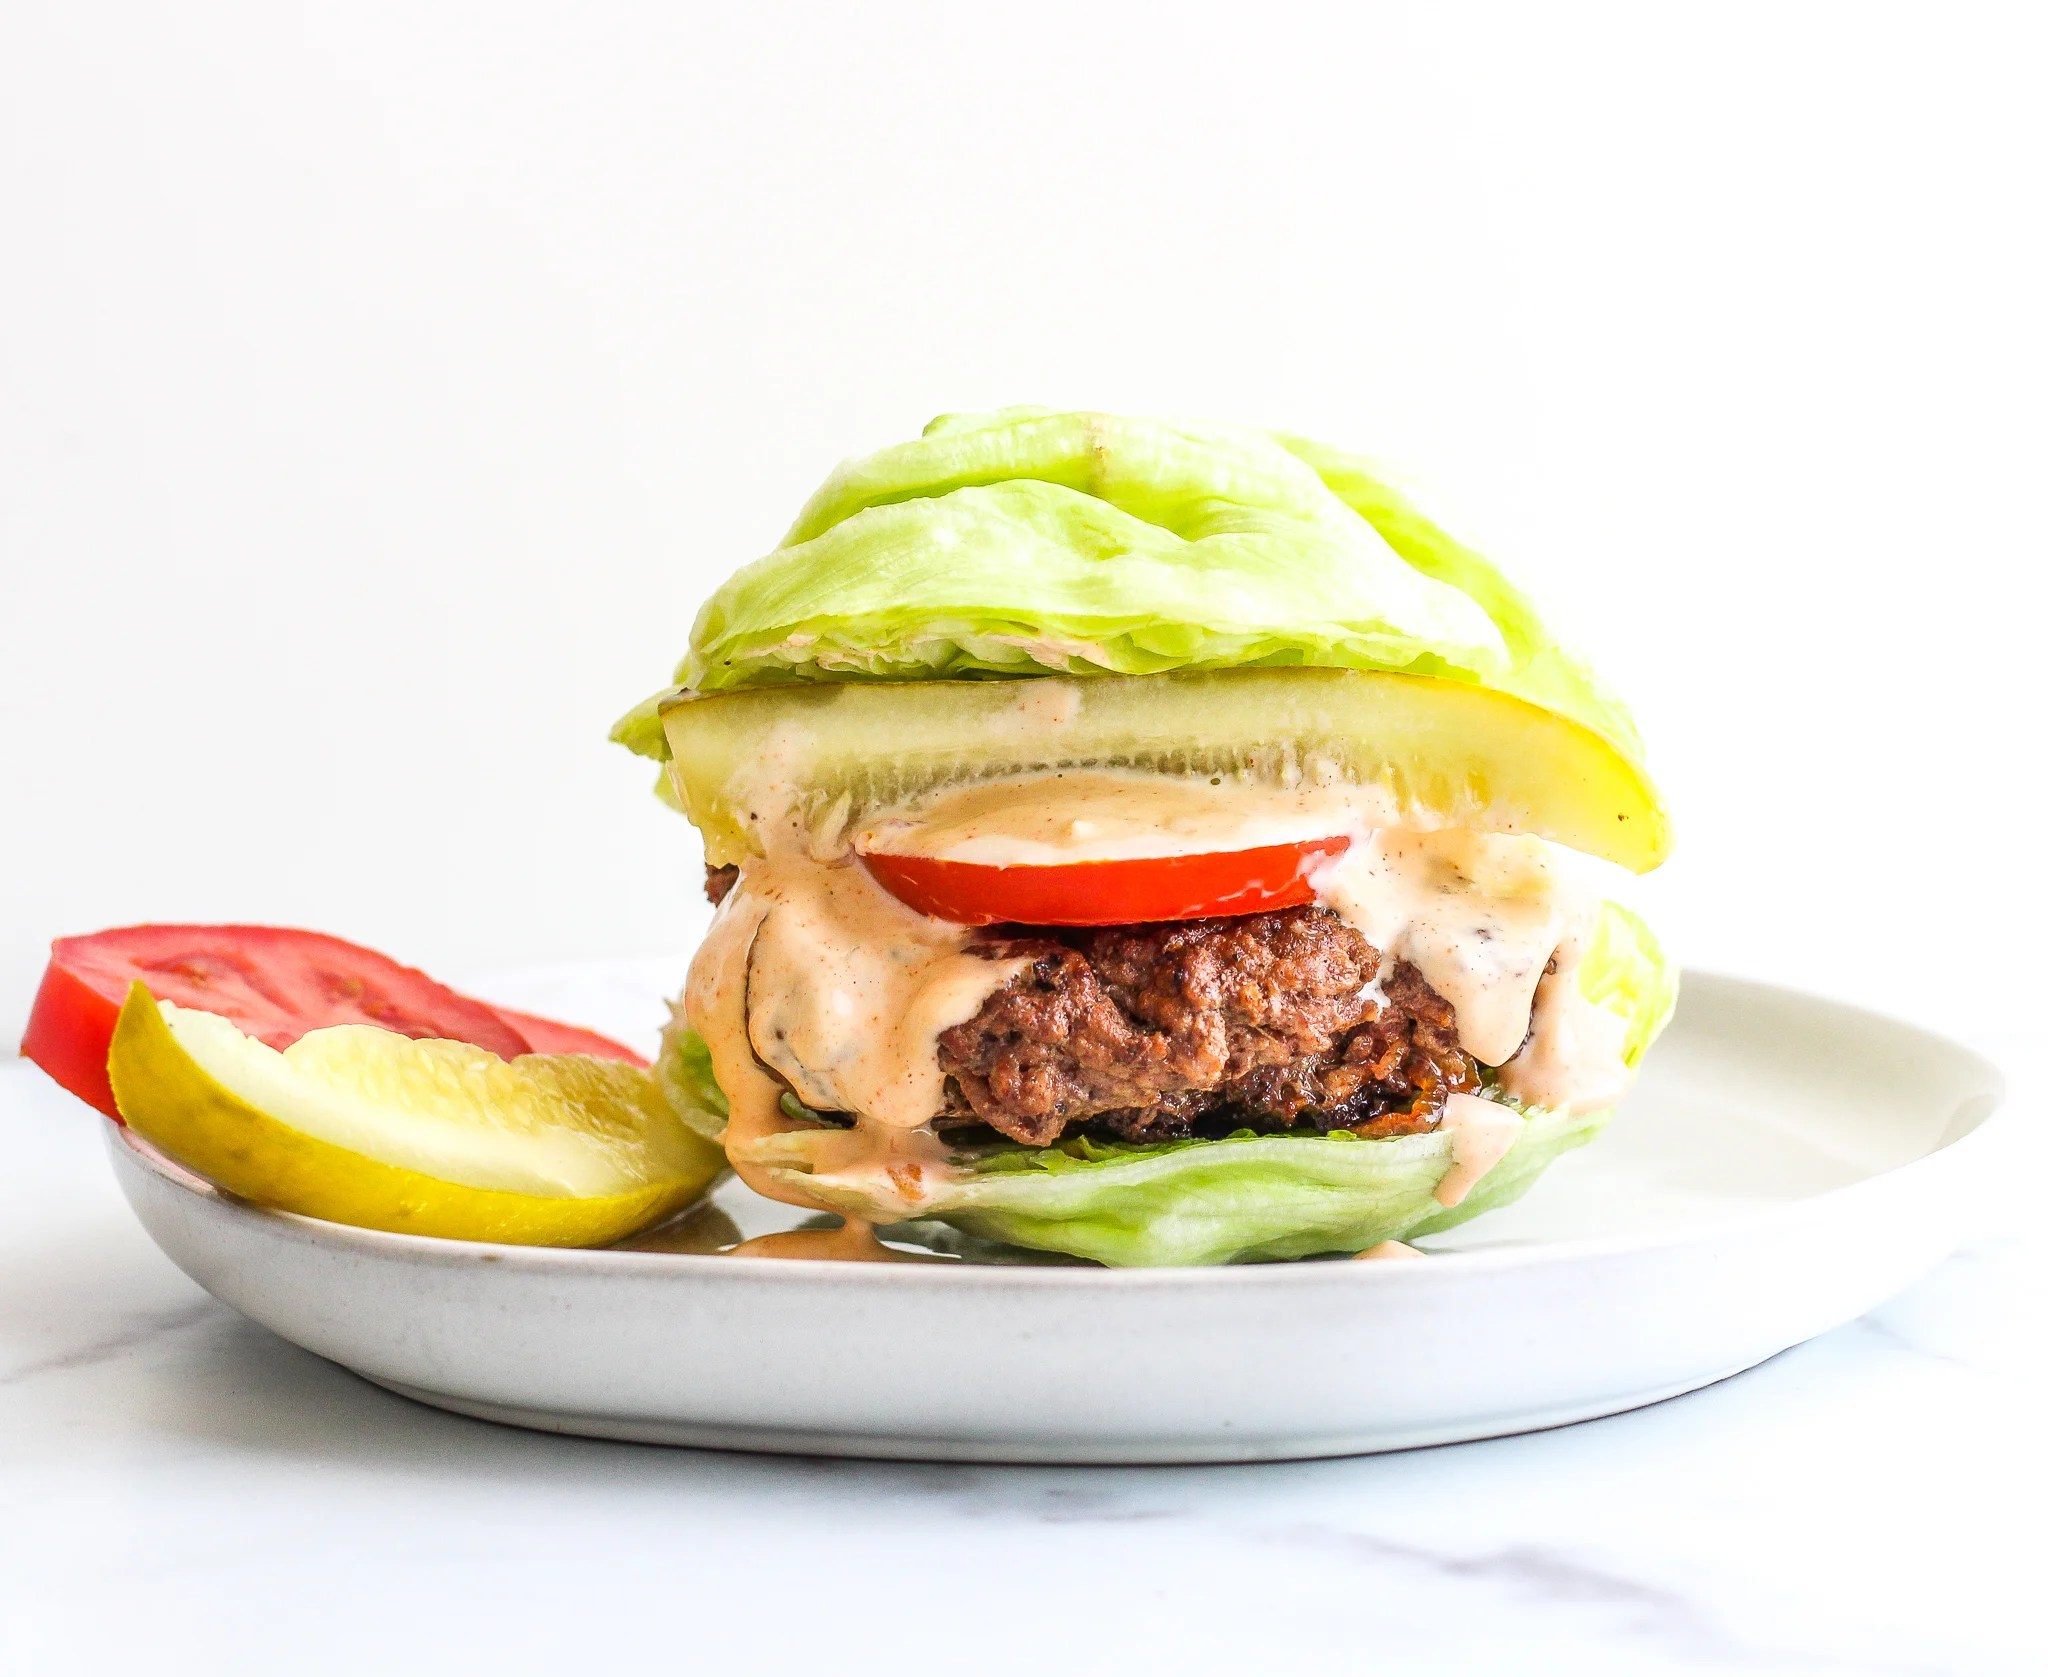 Caramelized Onion Stuffed Burgers on a lettuce bun topped with creamy spicy garlic aioli and a pickle and tomato